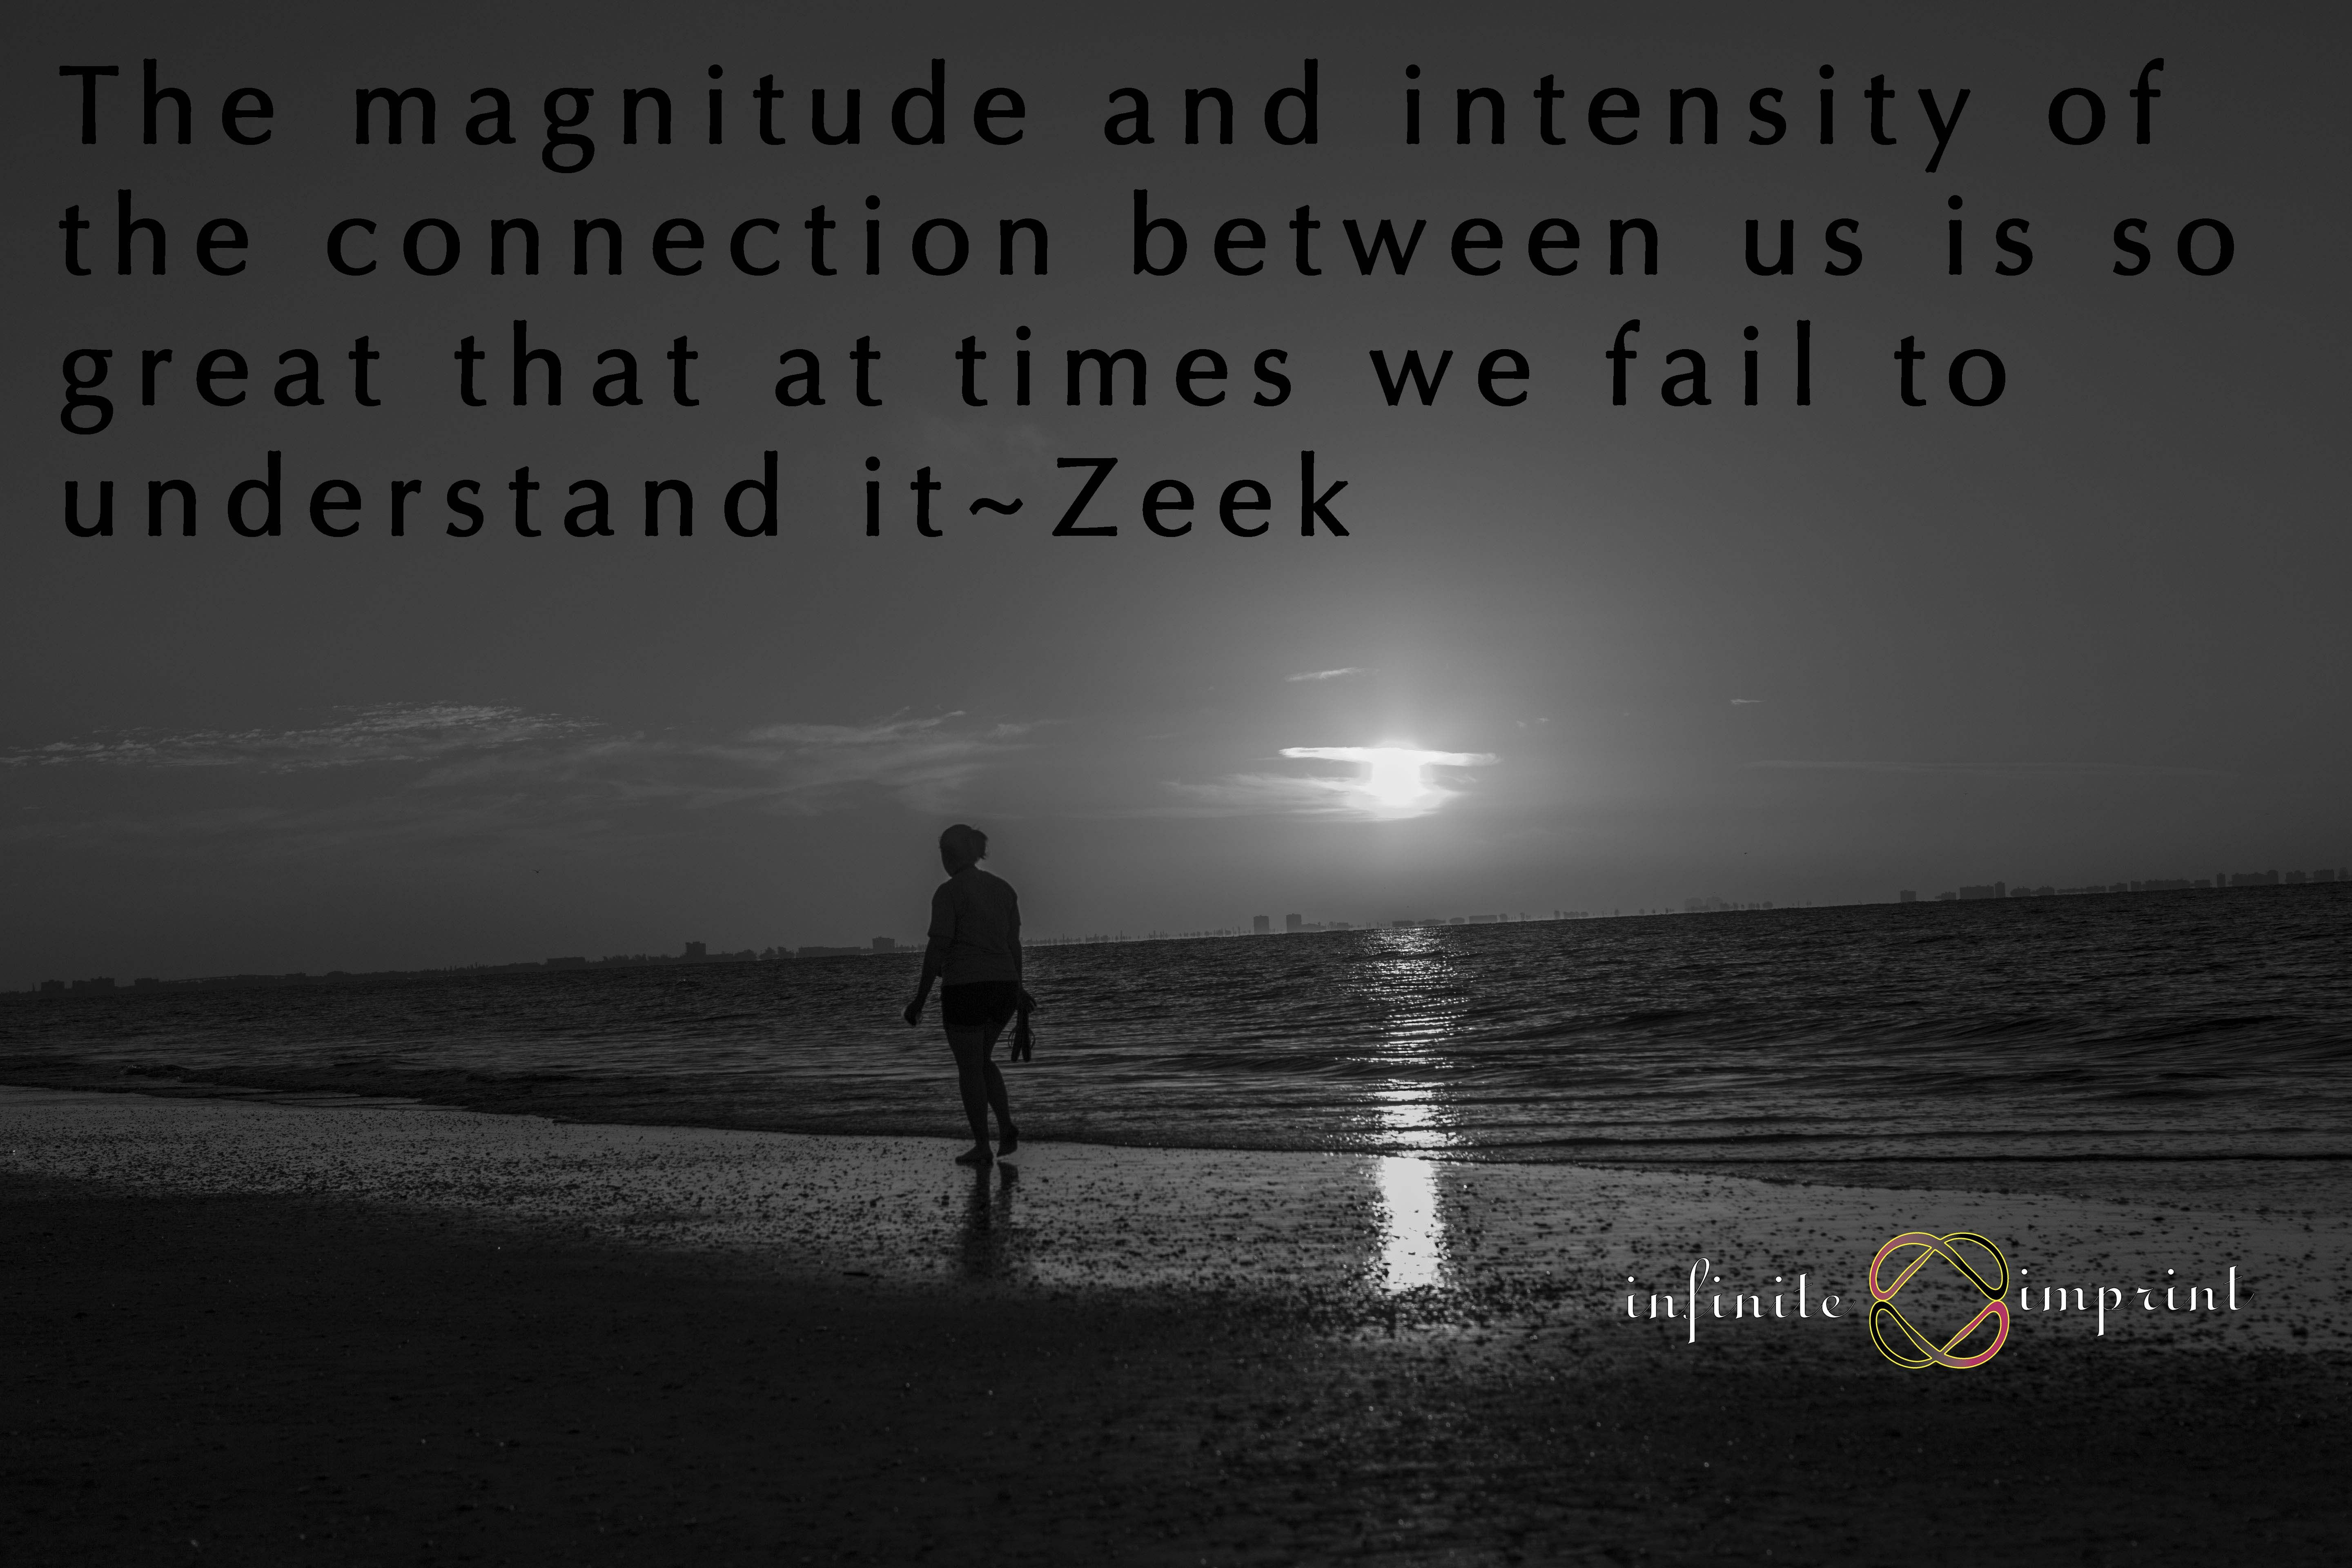 The magnitude and intensity of the connection between us is so great that at times we fail to understand it~Zeek